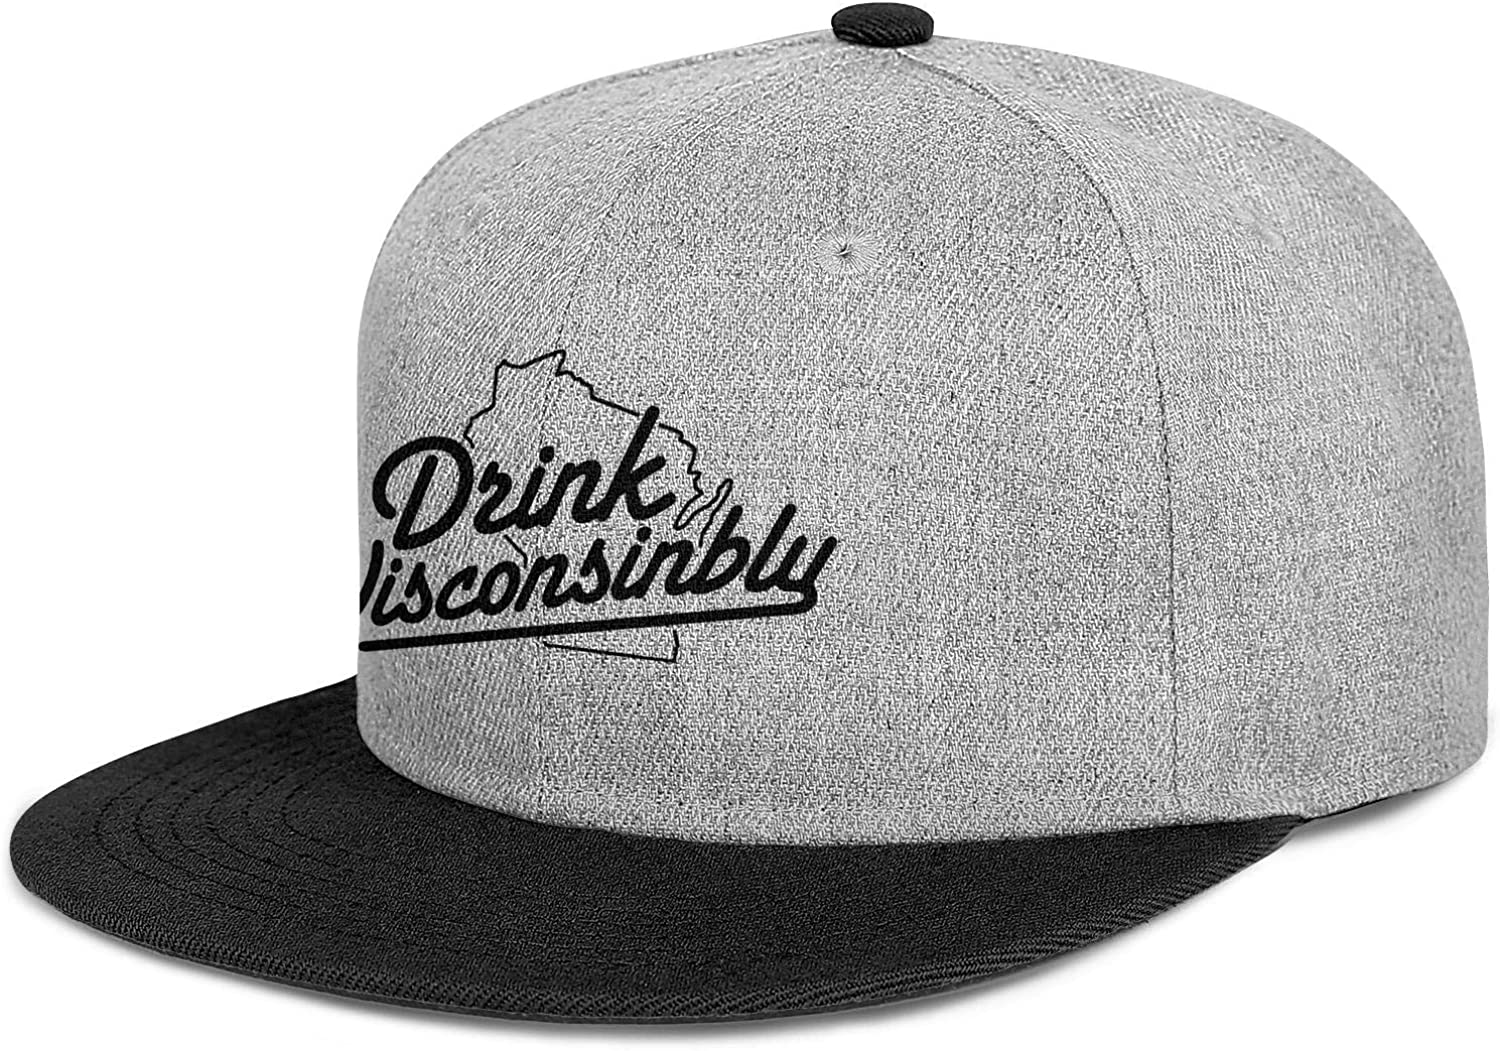 Mens Womens Trucker Hats Drink Wisconsinbly in Cute Fonts Snapback Fits Caps